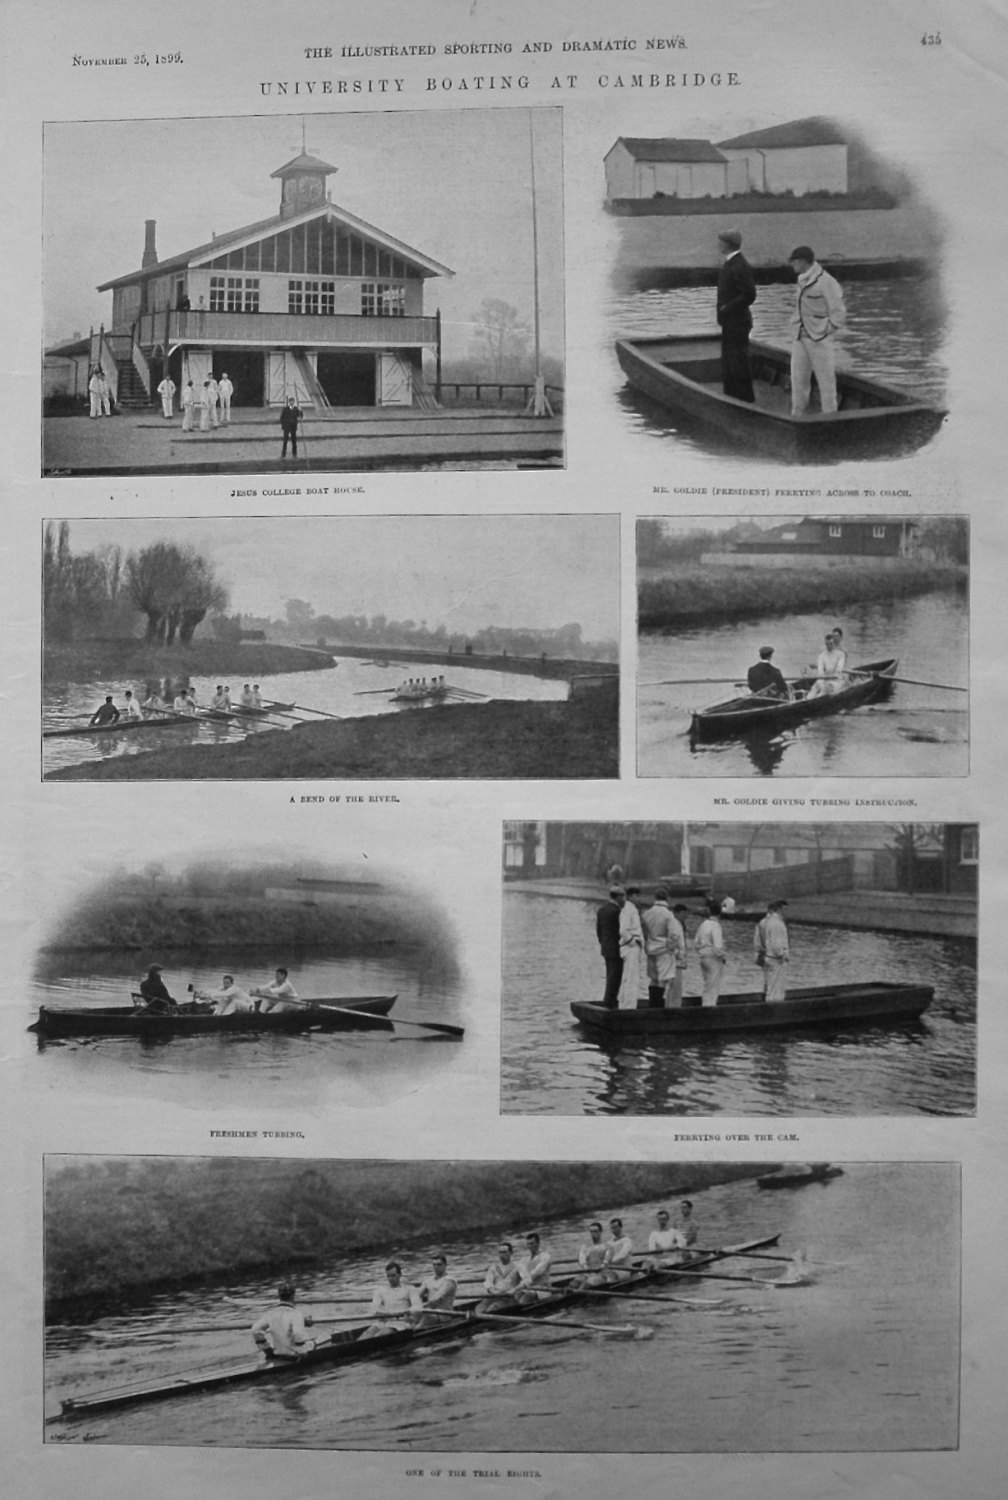 University Boating at Cambridge. 1899